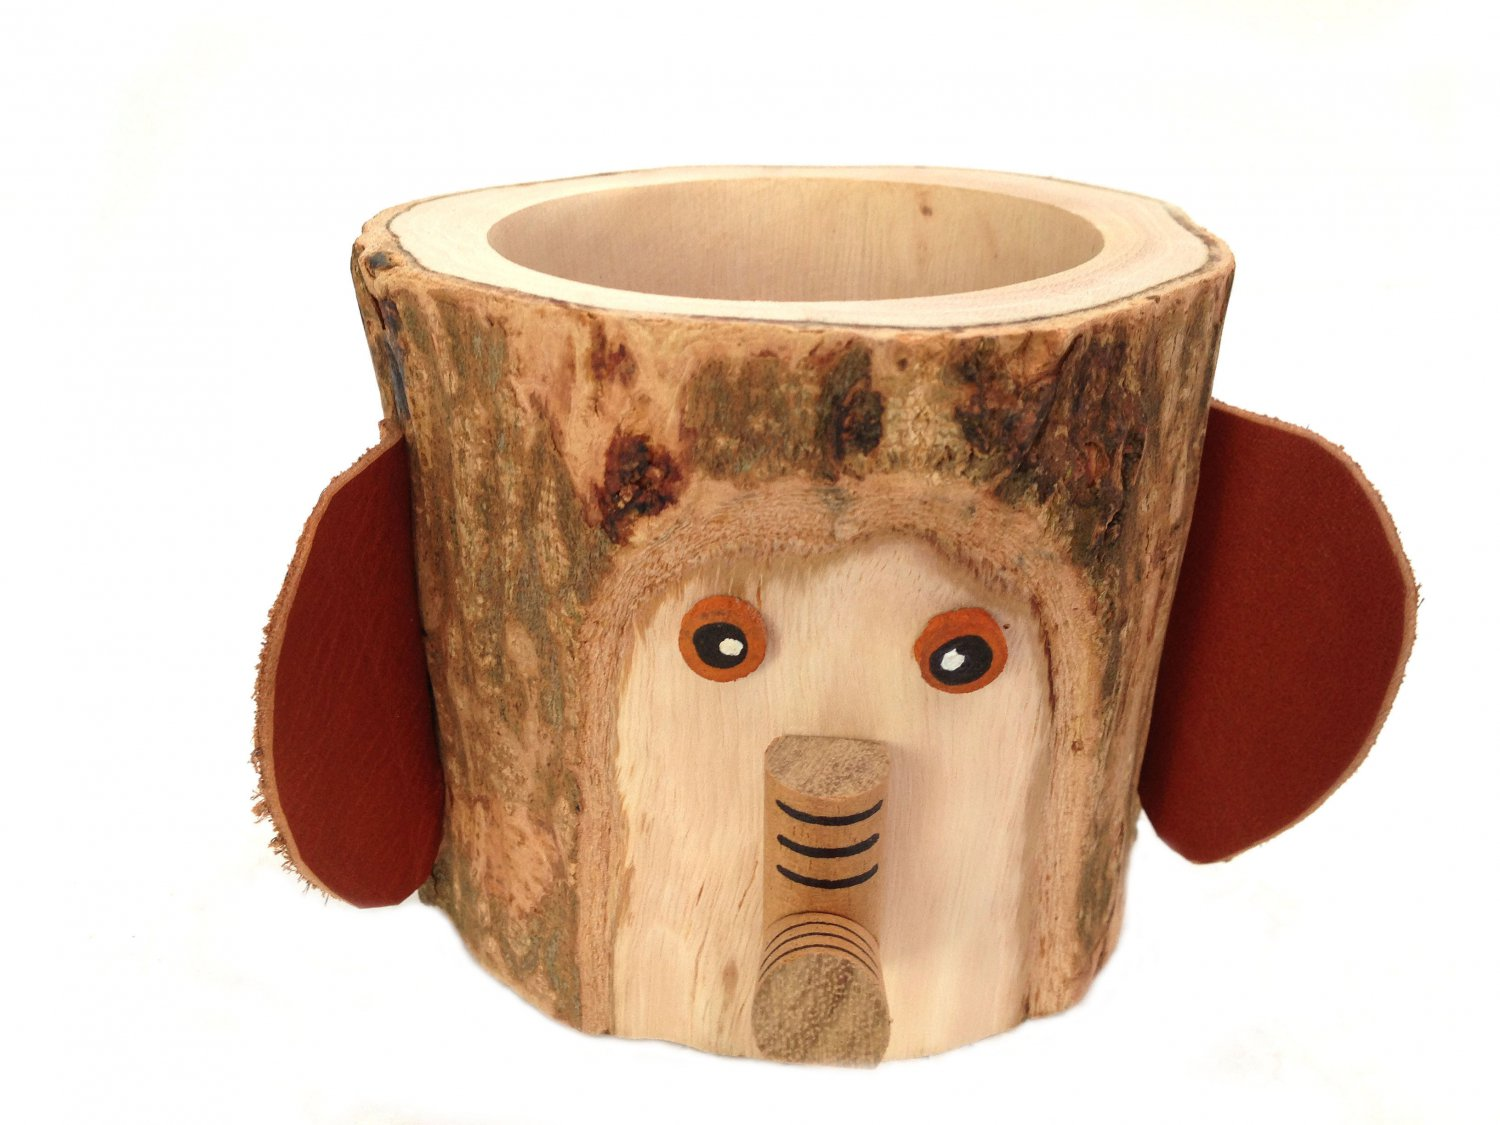 Pen Cup Holder Rustic Pencil Holder Elephant Bark Wood Pencil Cup Tree